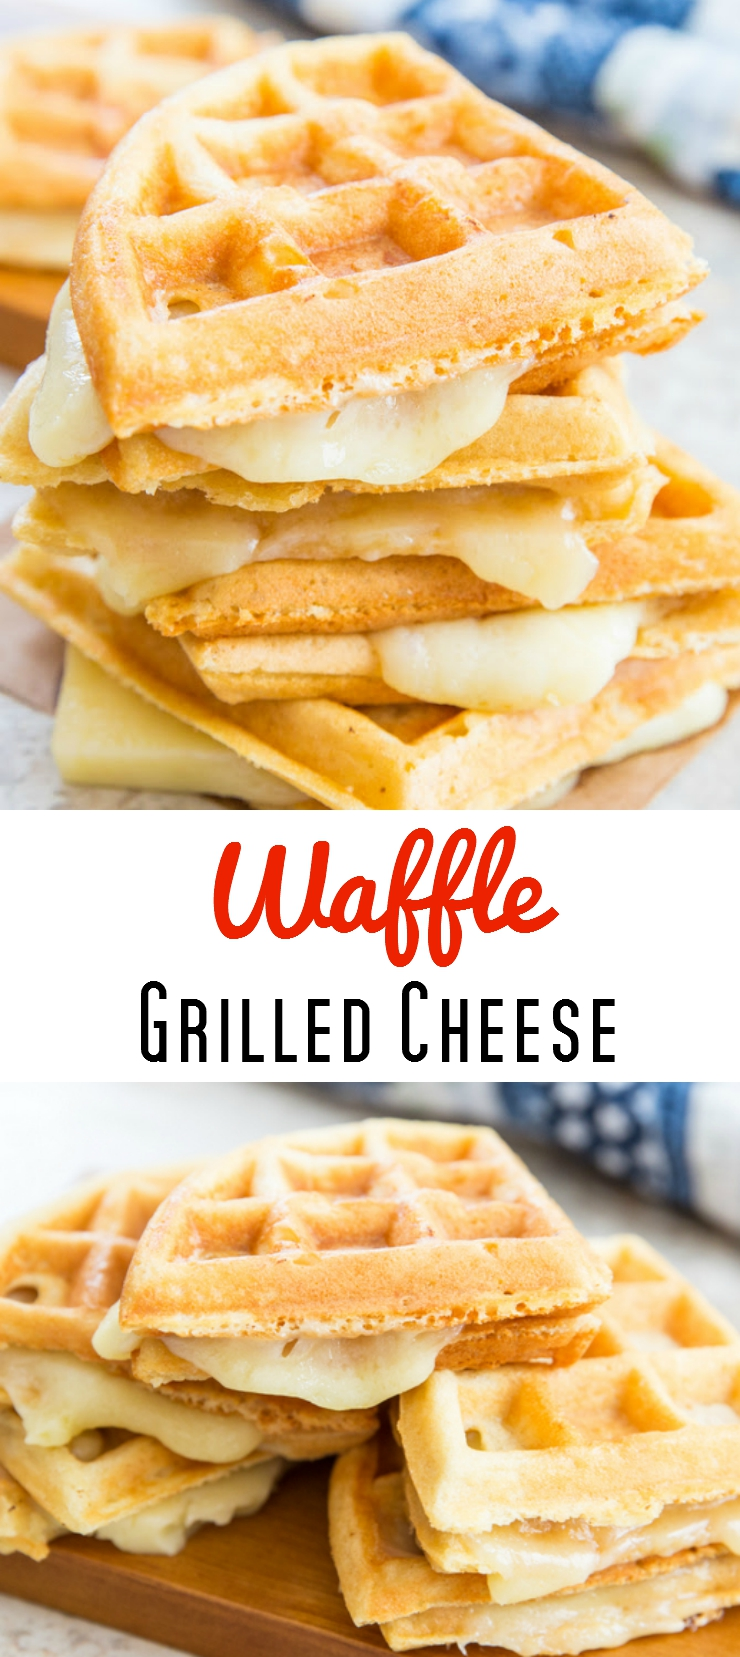 recipe: cheese waffle recipe philippines [12]